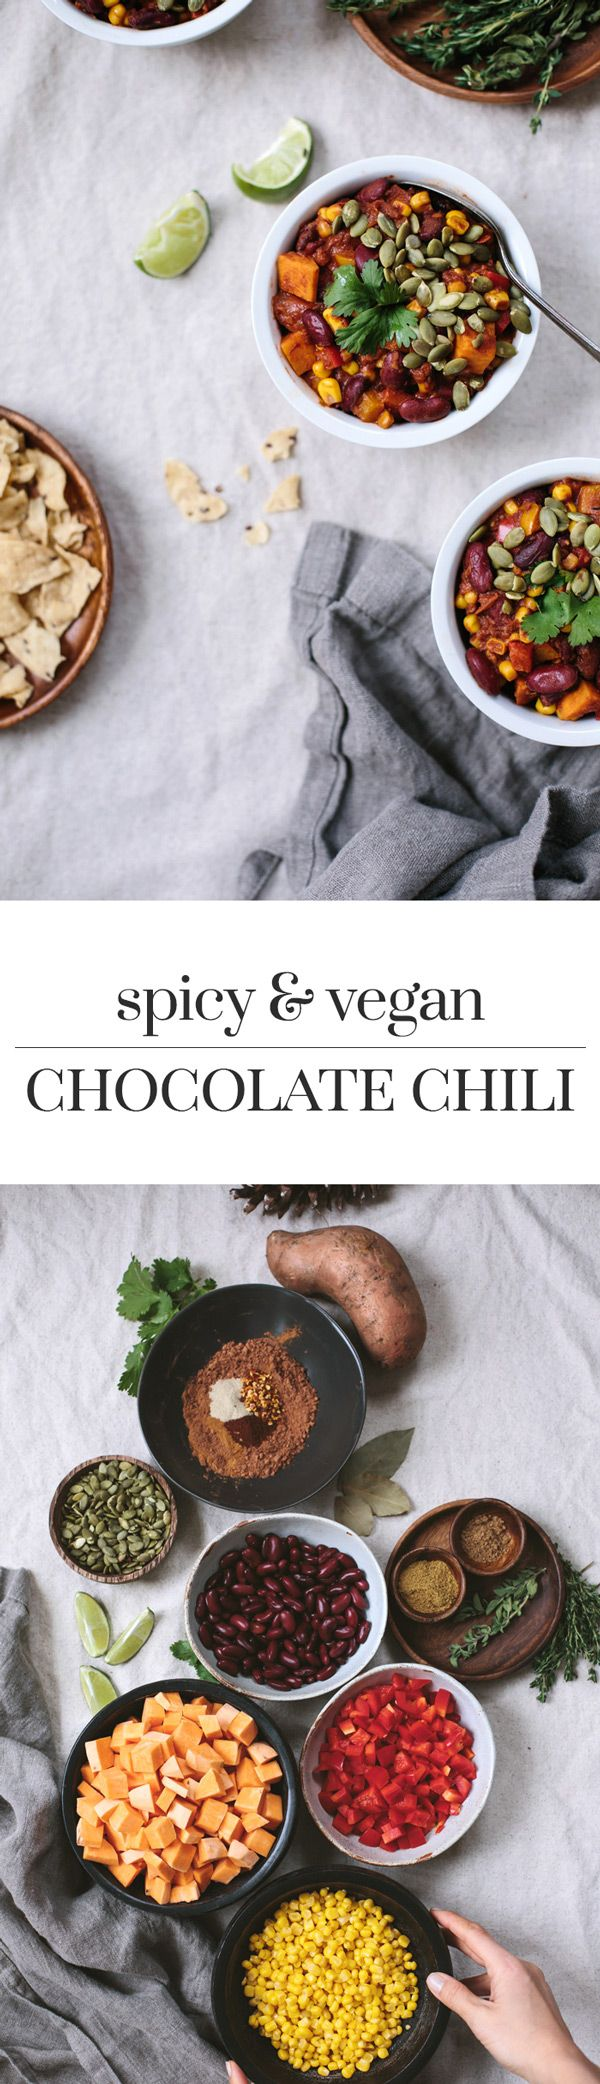 Spicy Vegan Chocolate Chili: An easy to make and vegan recipe made with sweet potatoes and cocoa powder. Heartwarming, filling, and packed with superfoods.